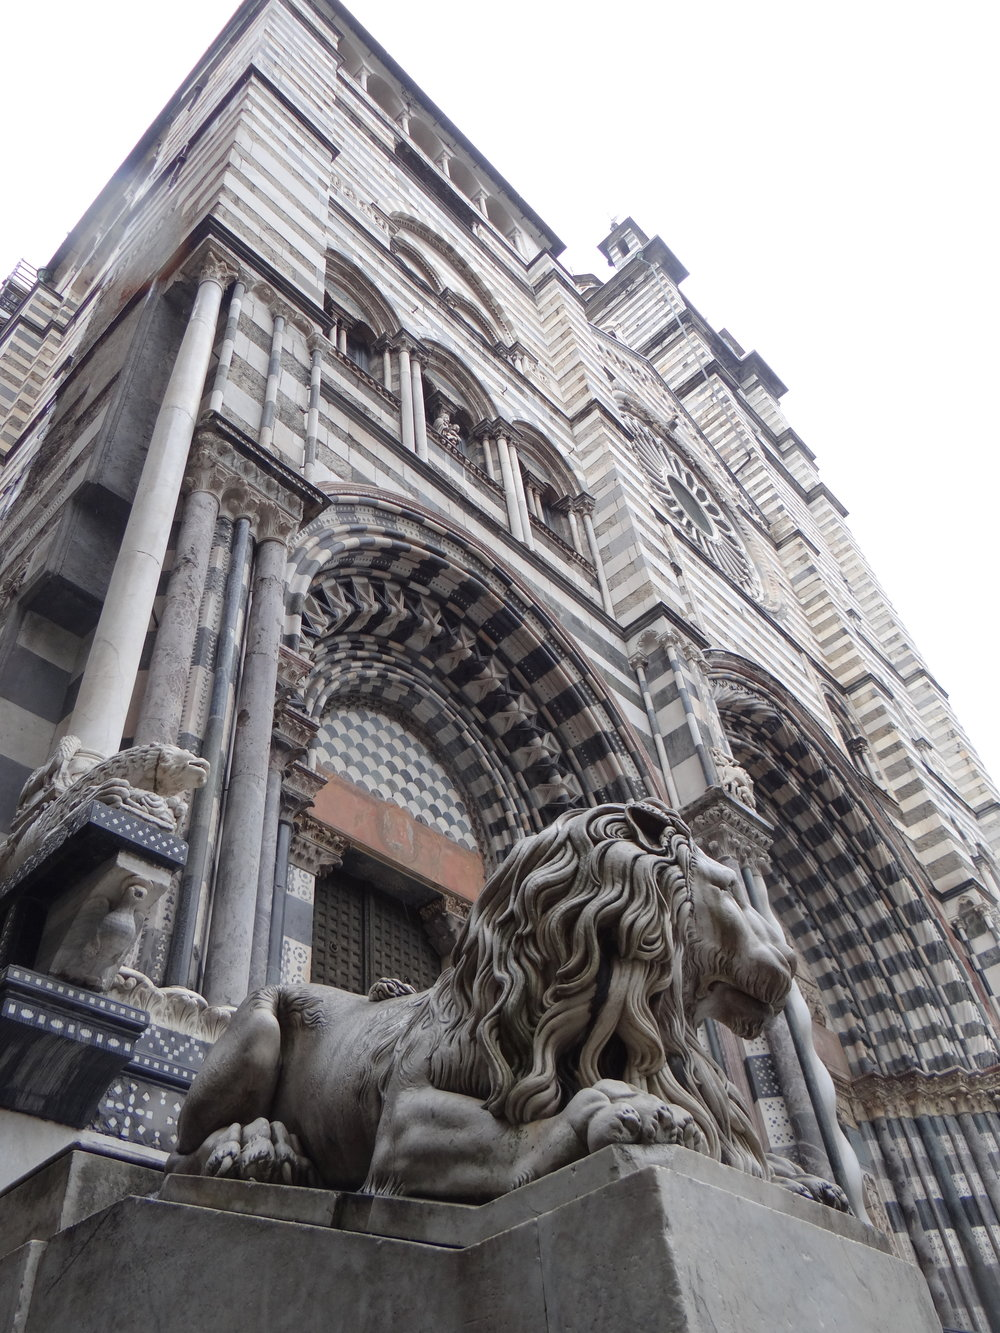 Like in any other European city of note, the cathedral is one of the focal points of the old town.